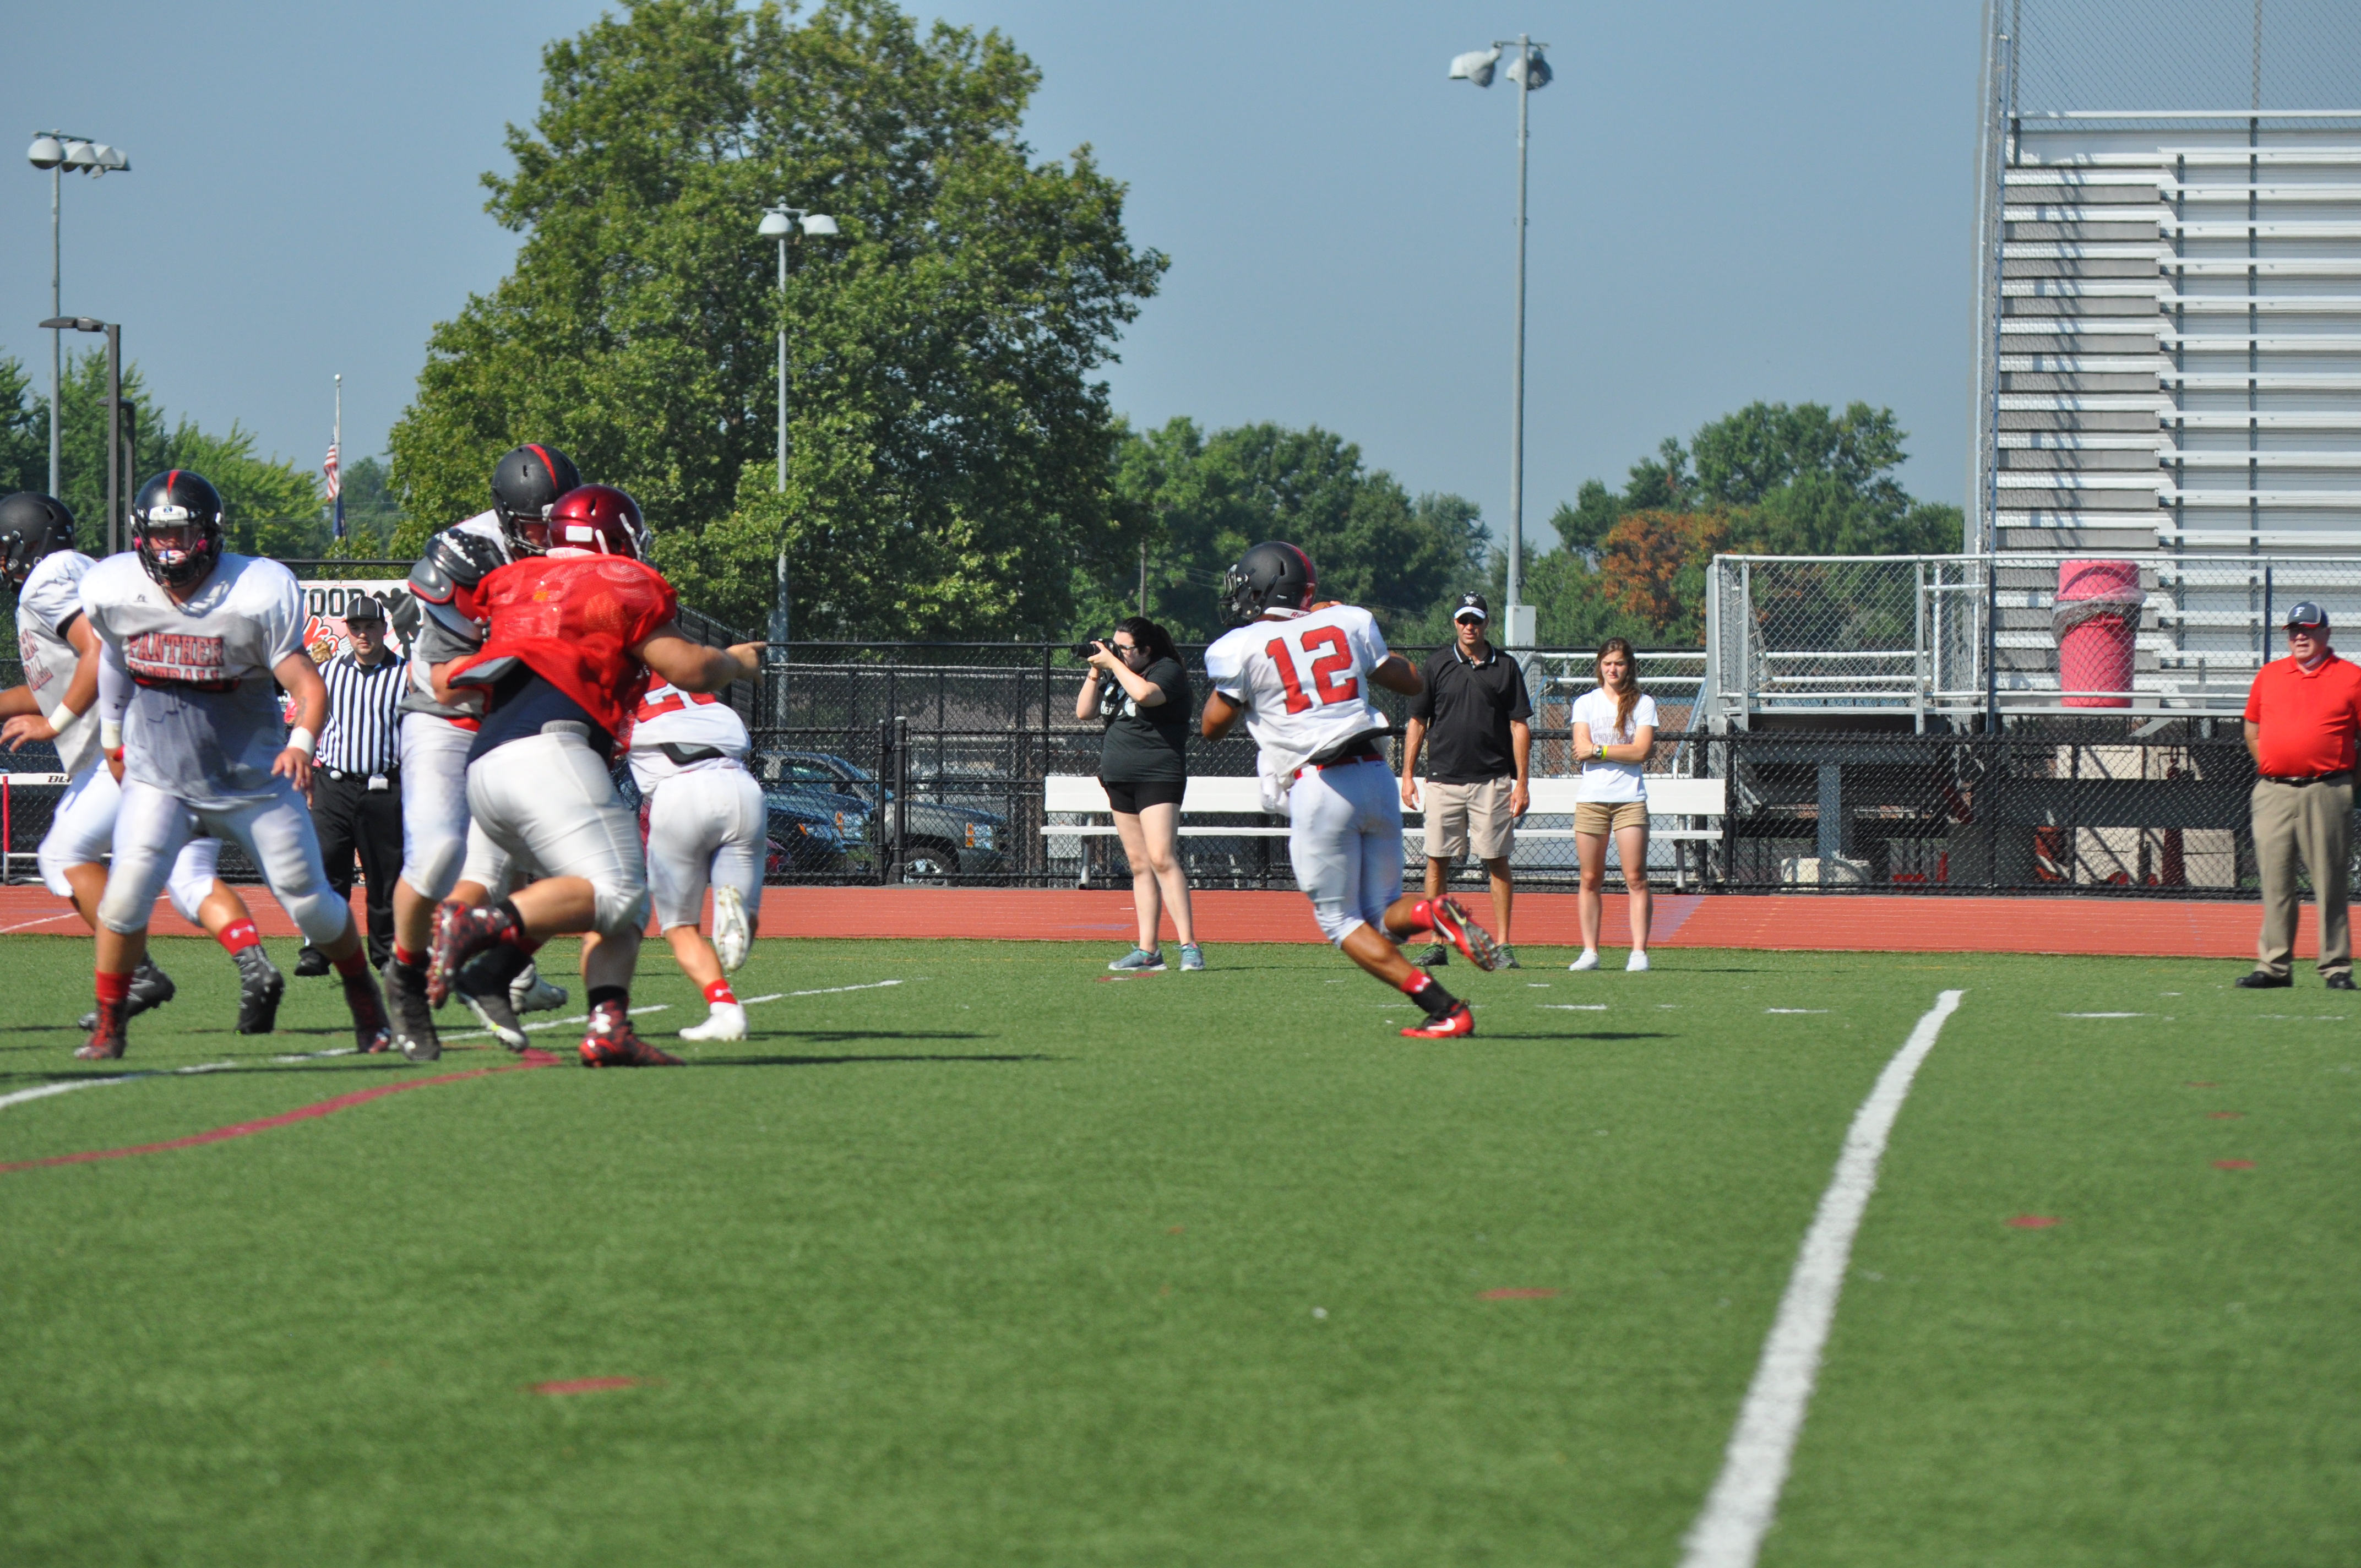 Saucon Valley Quarterback Brandon Holub rolls right looking for an open receiver during the Panther's scrimmage with Fleetwood on Saturday.